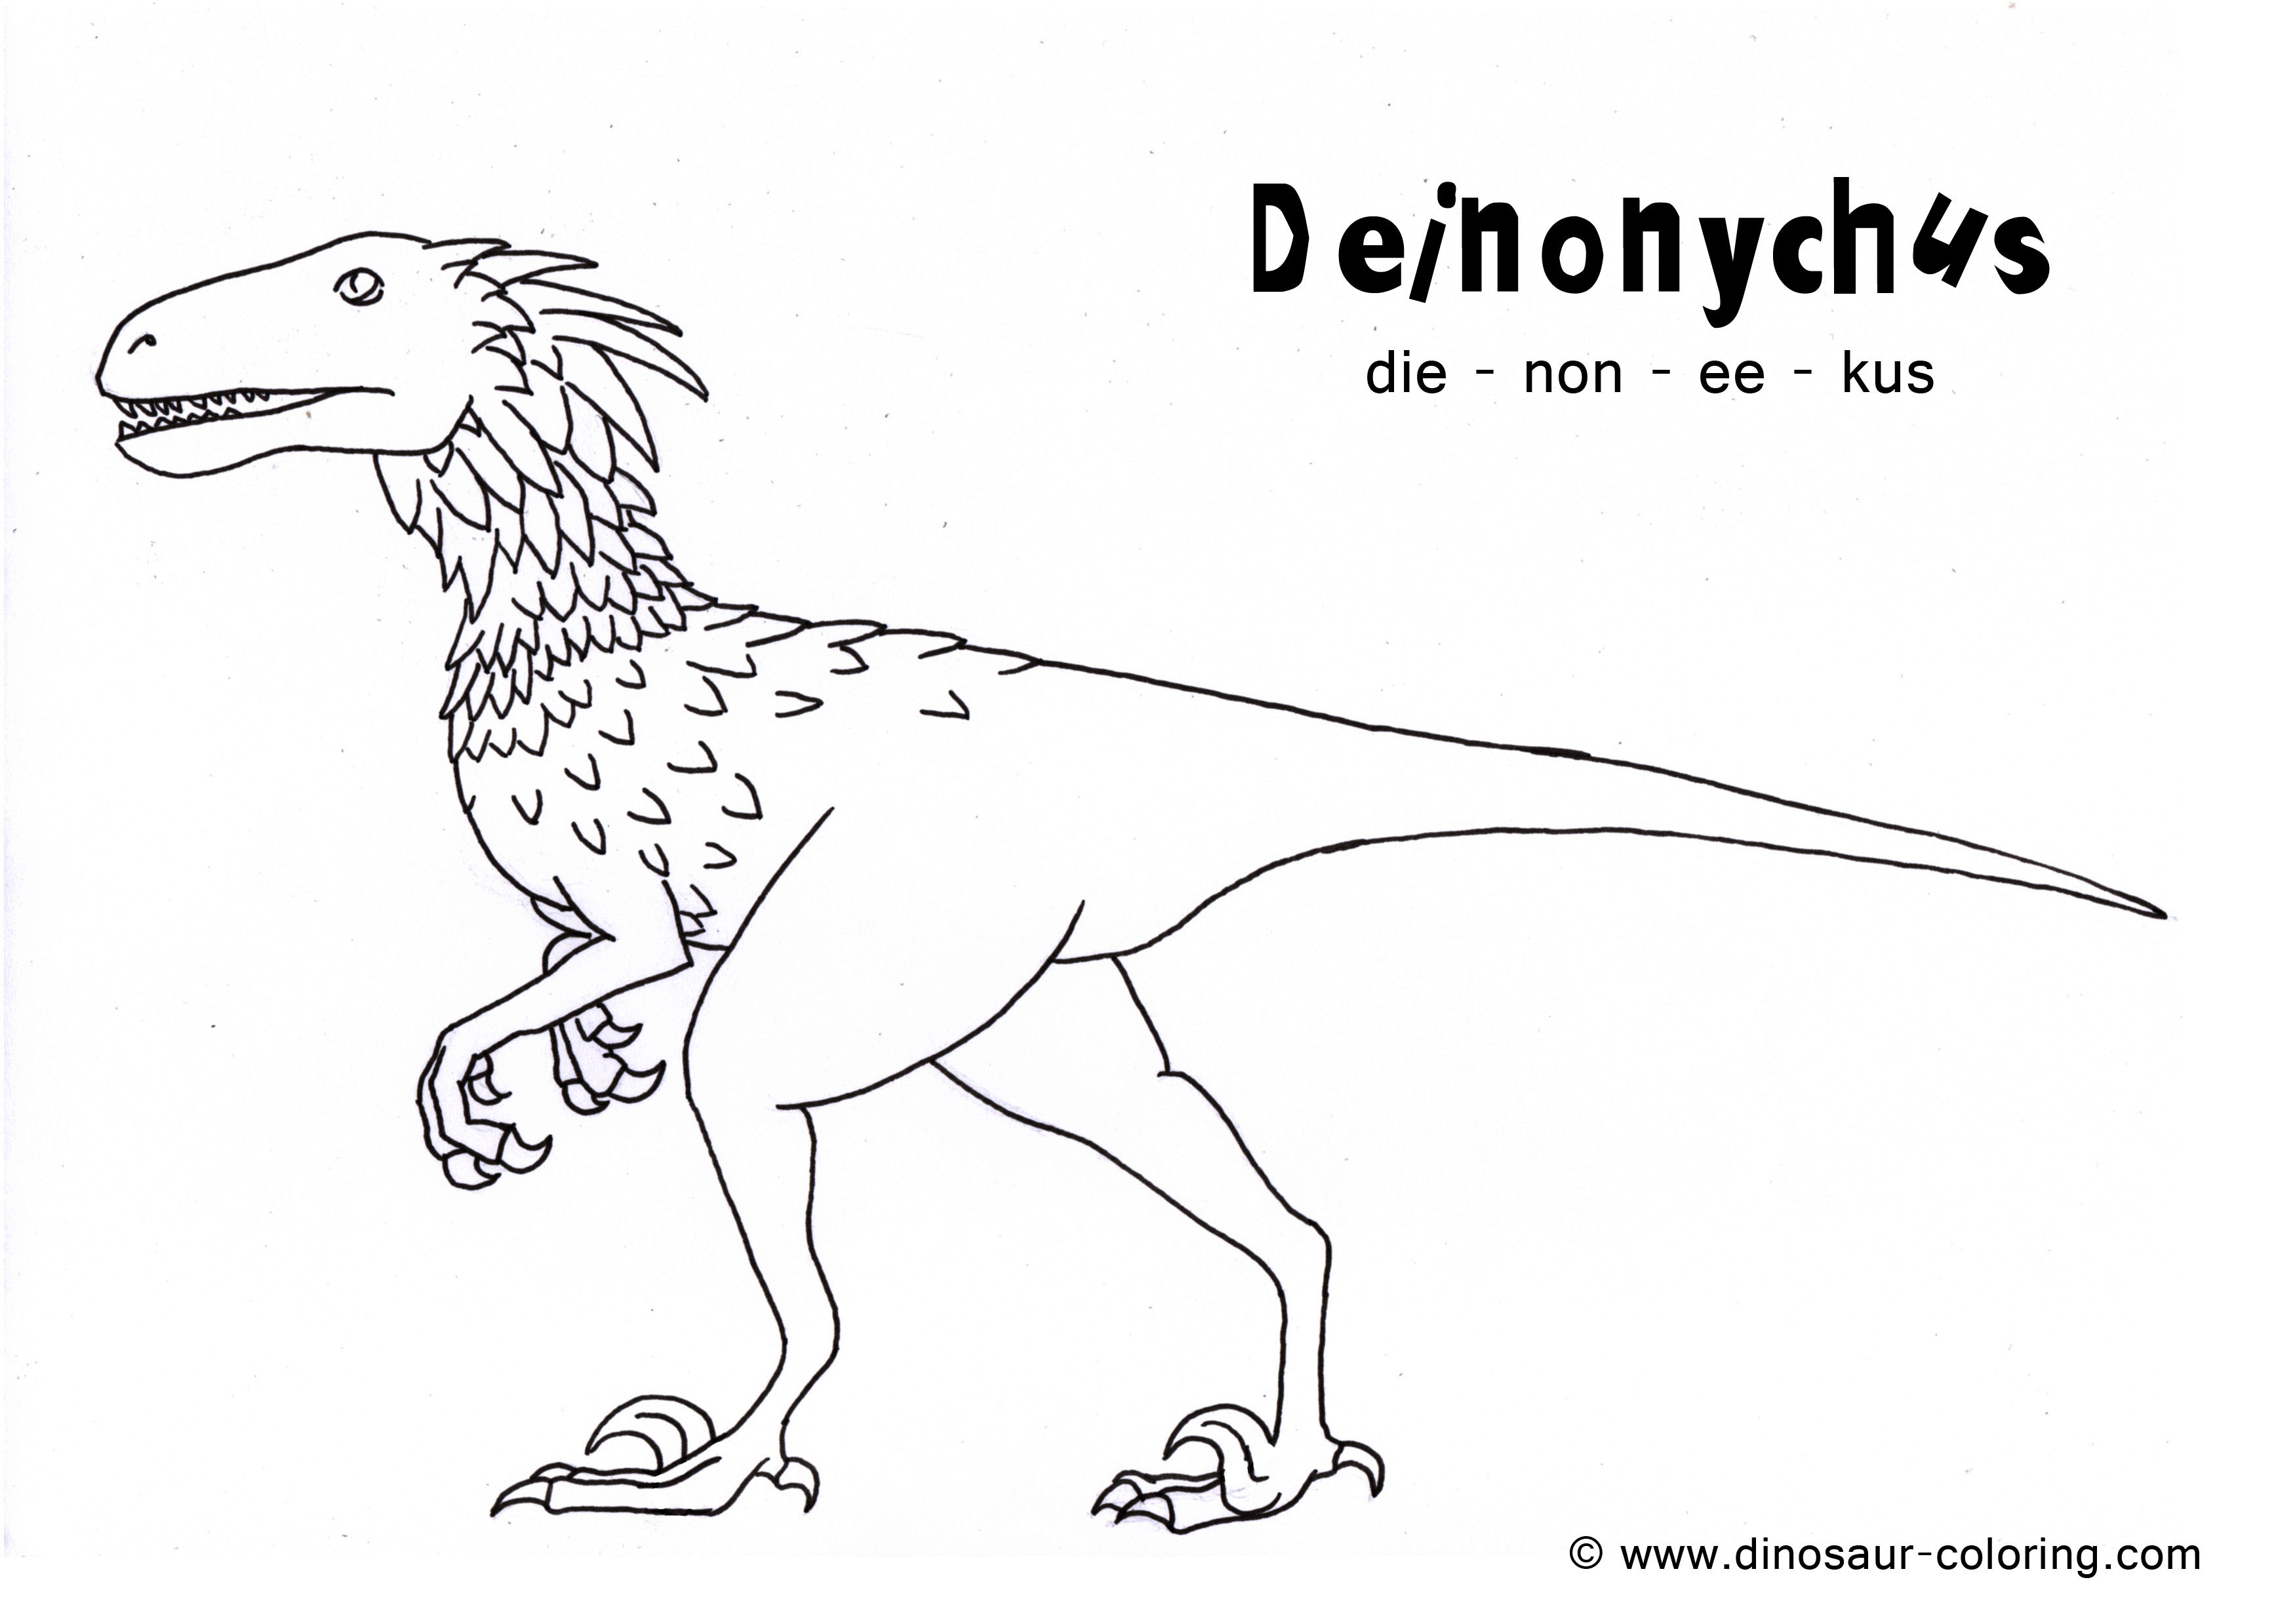 deinonychus coloring pages - photo#11